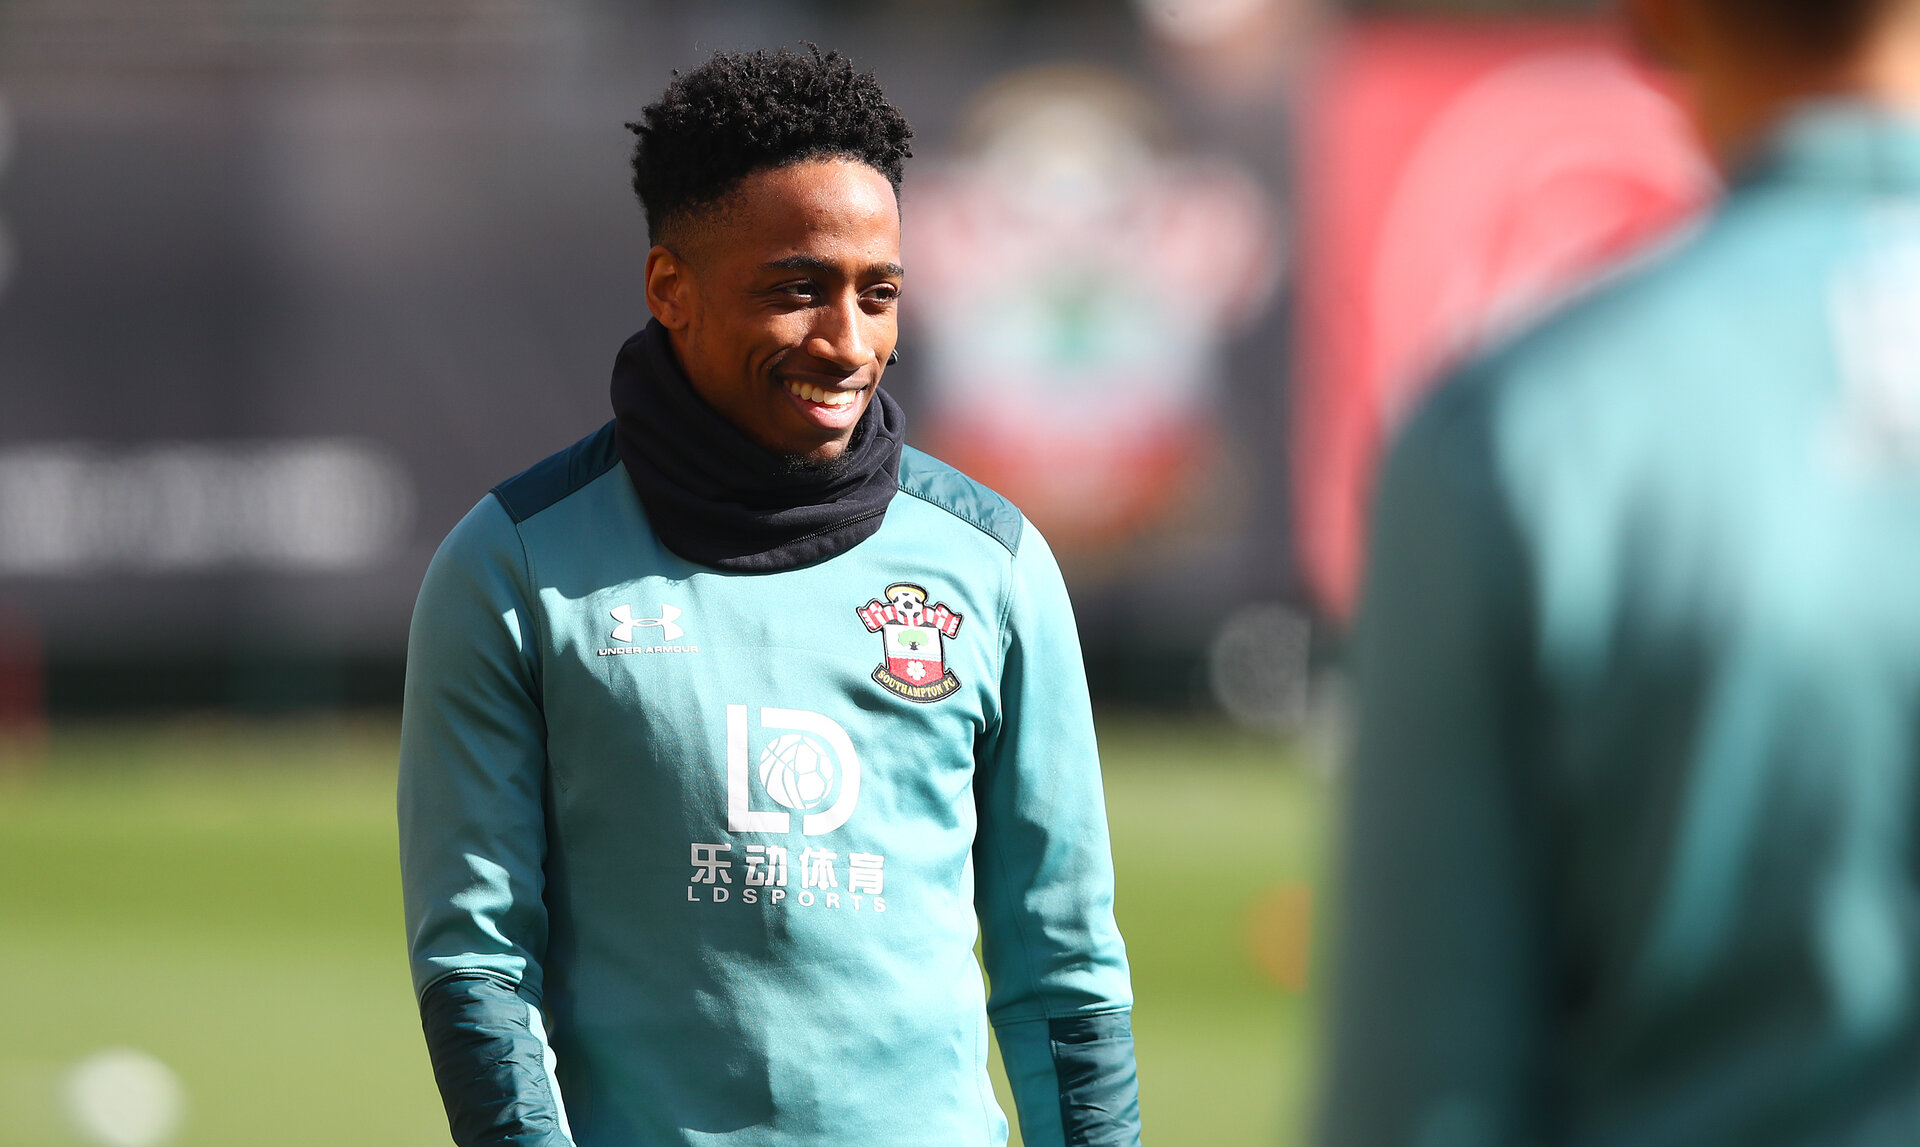 SOUTHAMPTON, ENGLAND - MARCH 12: Kyle Walker-Peters during a Southampton FC training session at the Staplewood Campus on March 12, 2020 in Southampton, England. (Photo by Matt Watson/Southampton FC via Getty Images)